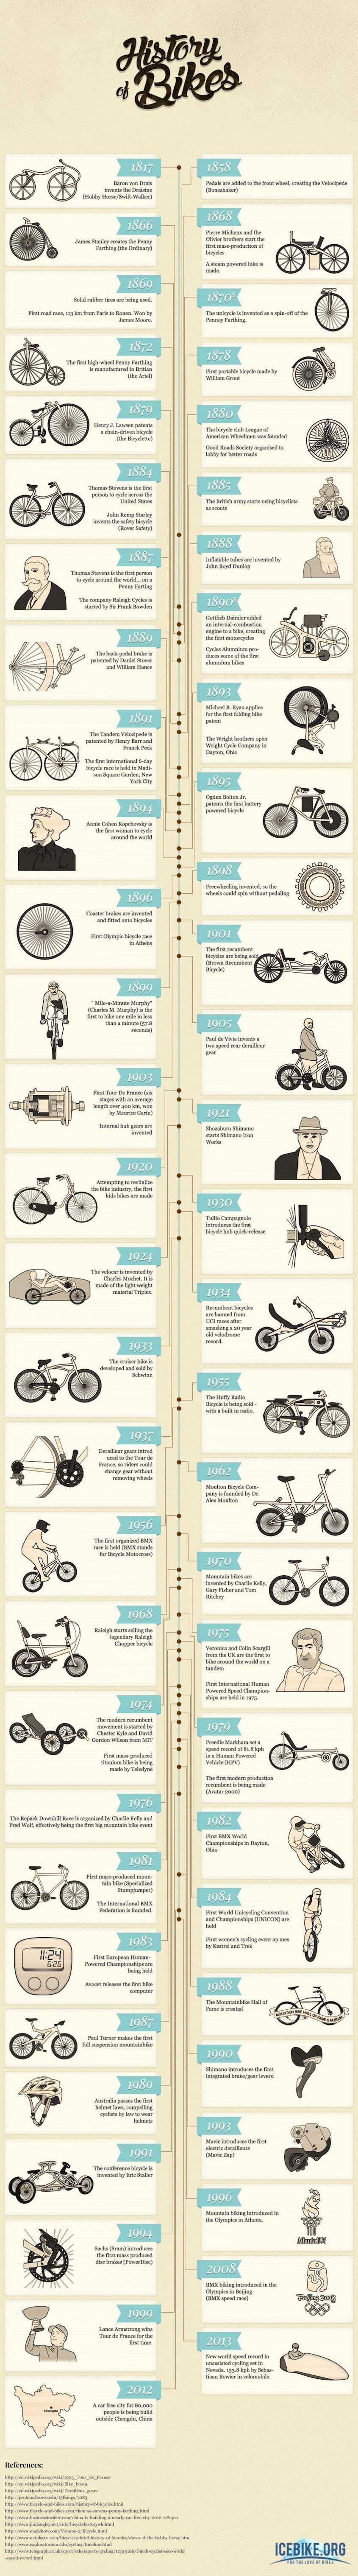 History of Bikes infografica_urbancycling